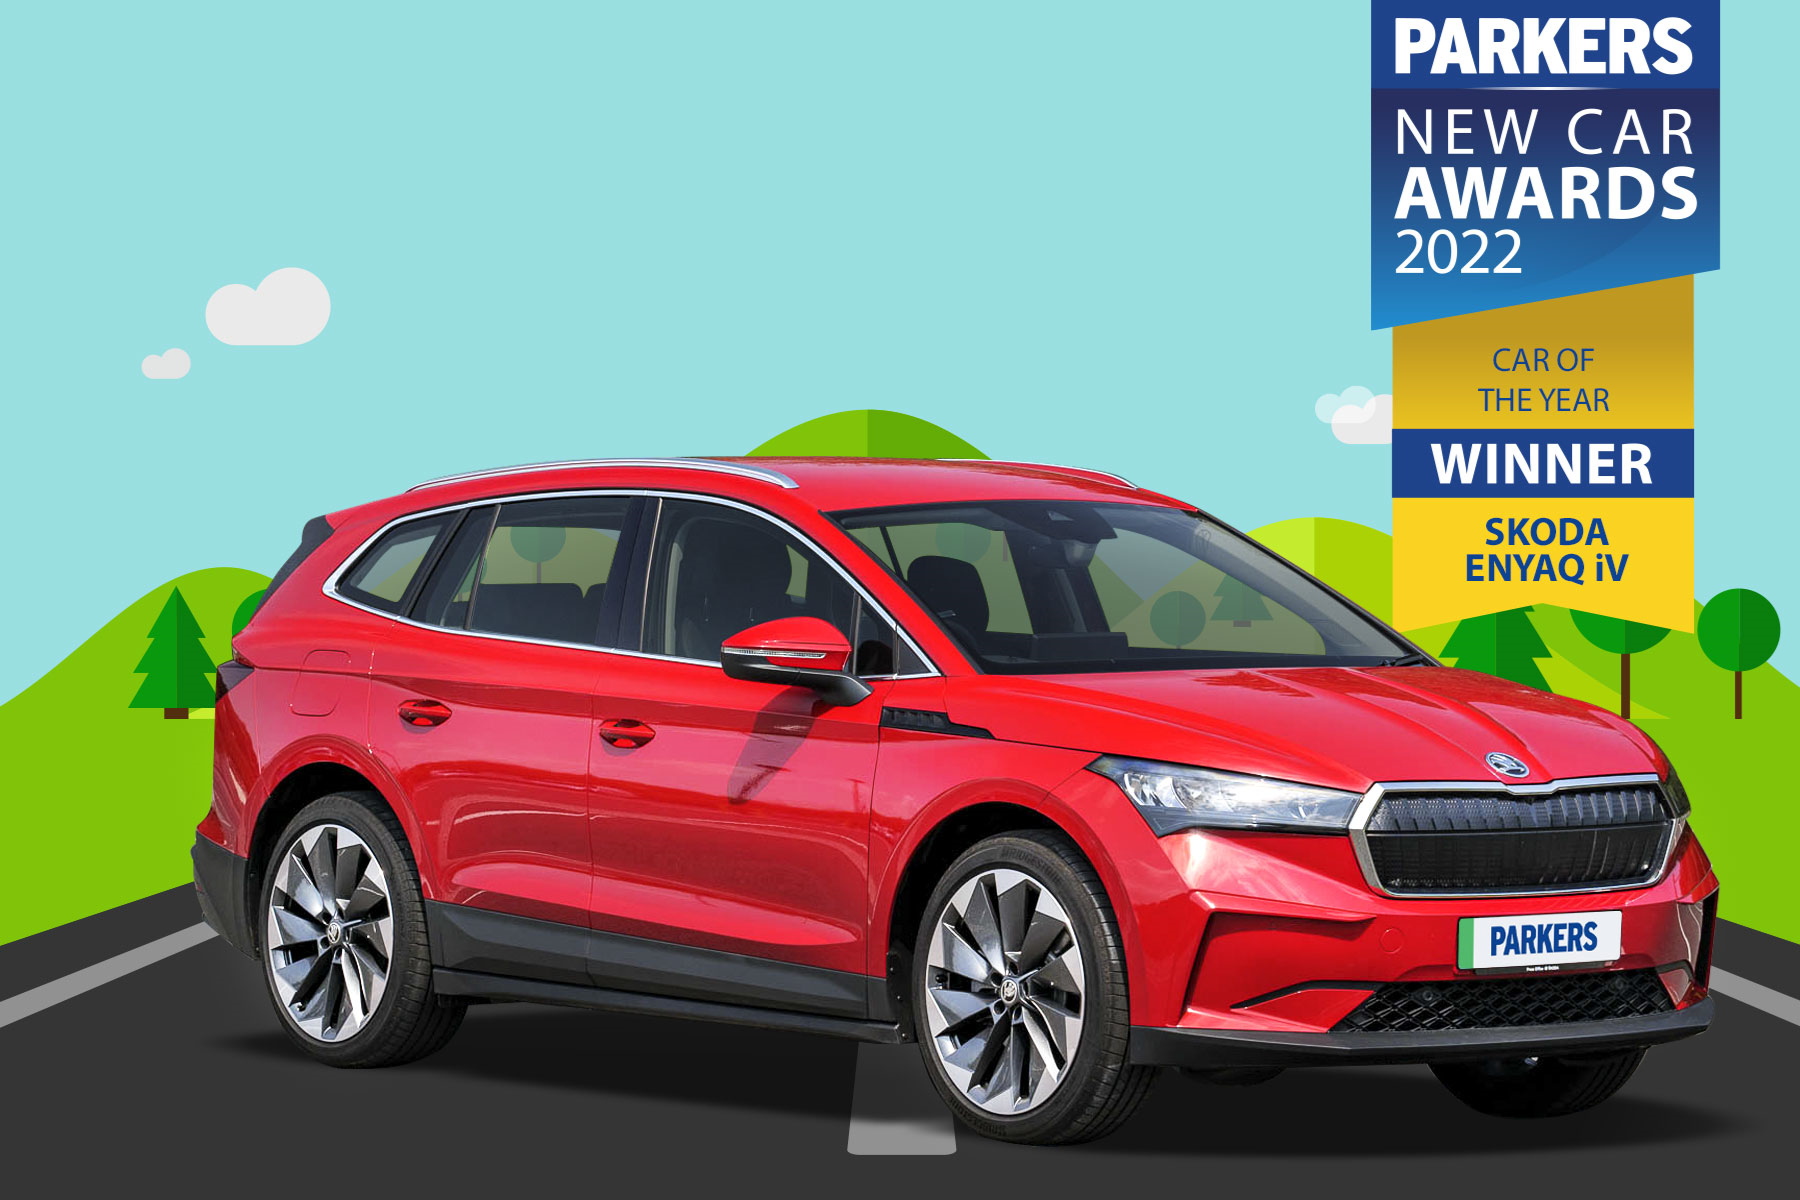 Parkers' Best Large Electric Car award goes to the Skoda Enyaq iV